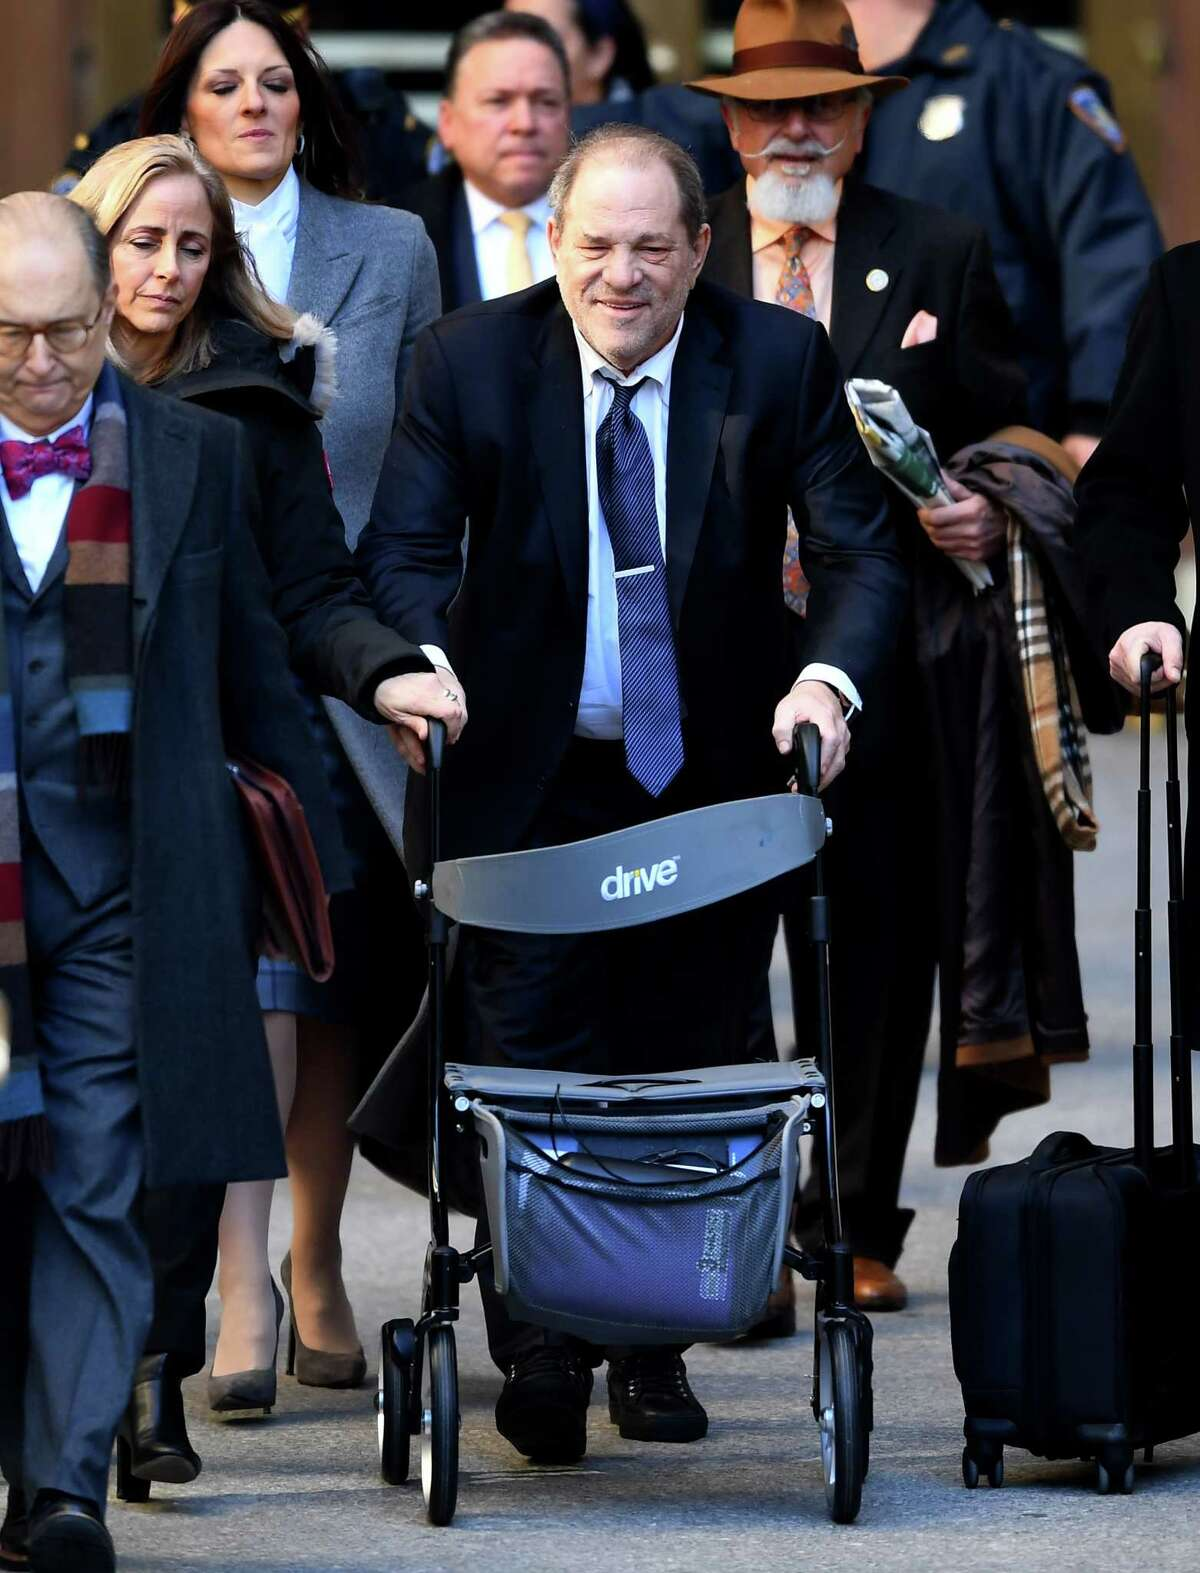 Harvey Weinstein leaves the Manhattan Criminal Court, as a jury continues with deliberations on February 21, 2020 in New York City. - The disgraced movie mogul, 67, faces life in prison if the jury of seven men and five women convict him of a variety of sexual misconduct charges in New York. (Photo by Johannes EISELE / AFP) (Photo by JOHANNES EISELE/AFP via Getty Images)